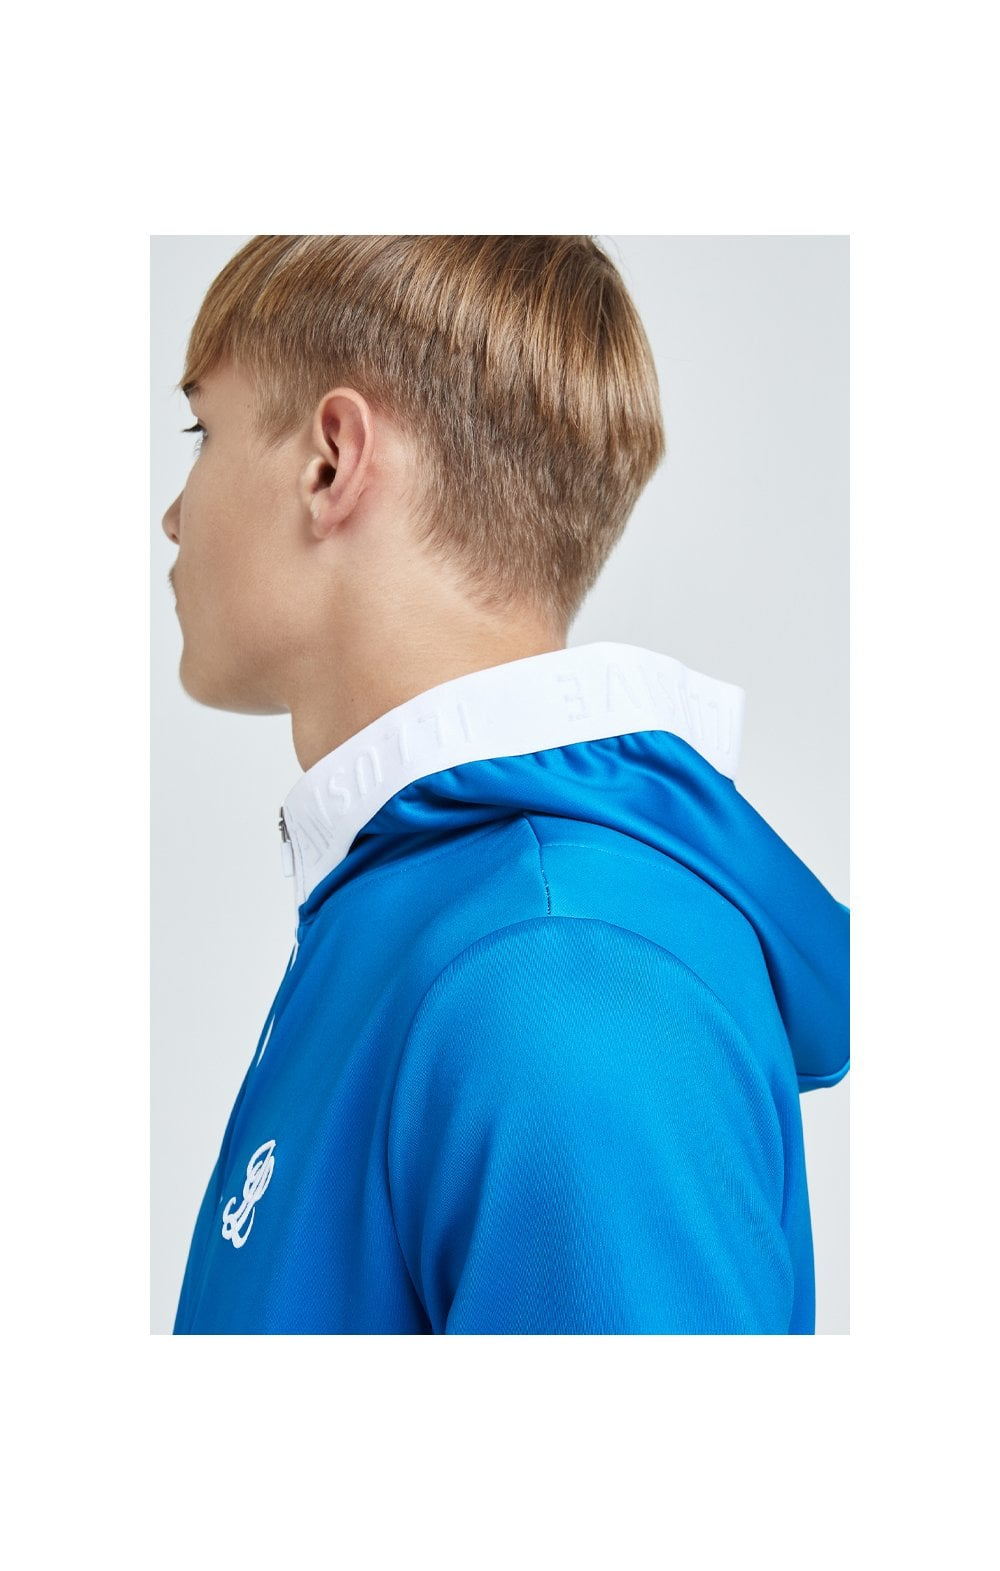 Illusive London Elevate Agility Zip Through Hoodie - Blue & White (2)